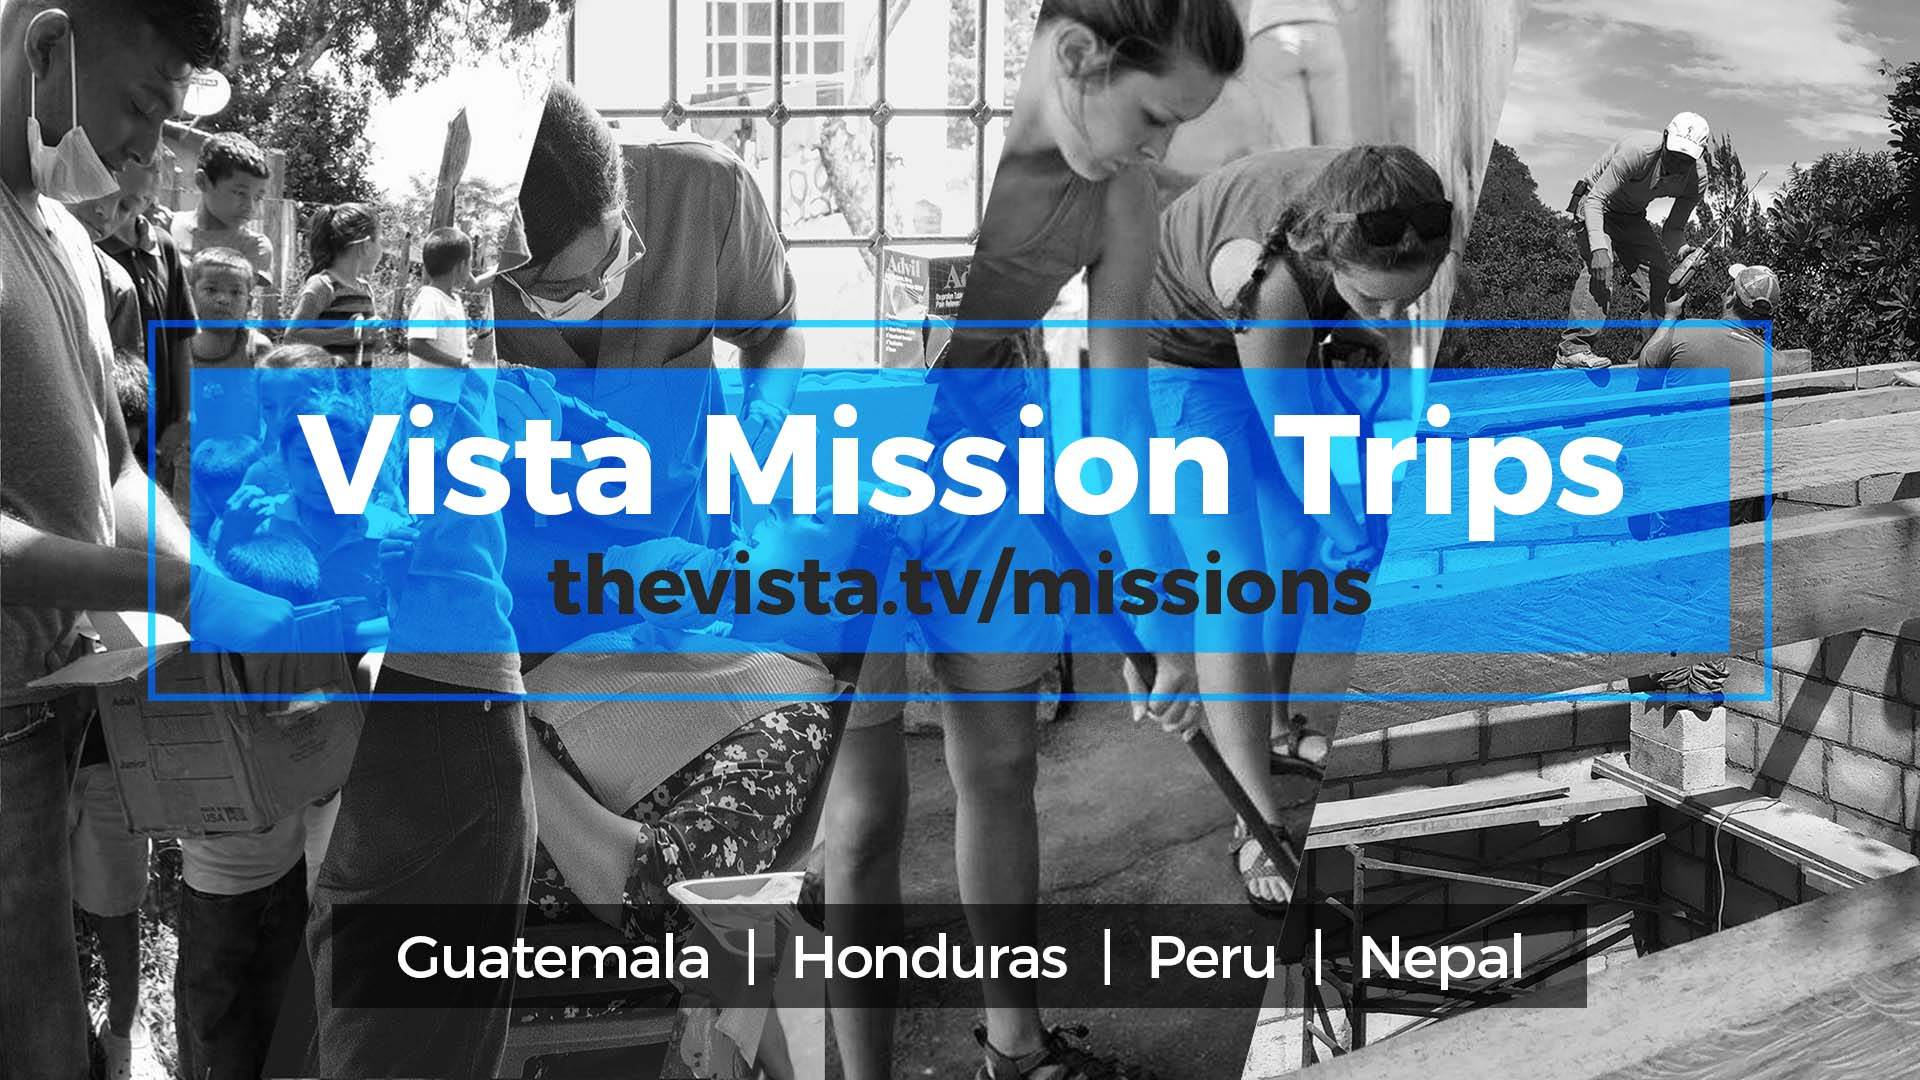 Click Image to Learn About Vista Mission Trips to Guatemala, Honduras, Peru, and Nepal